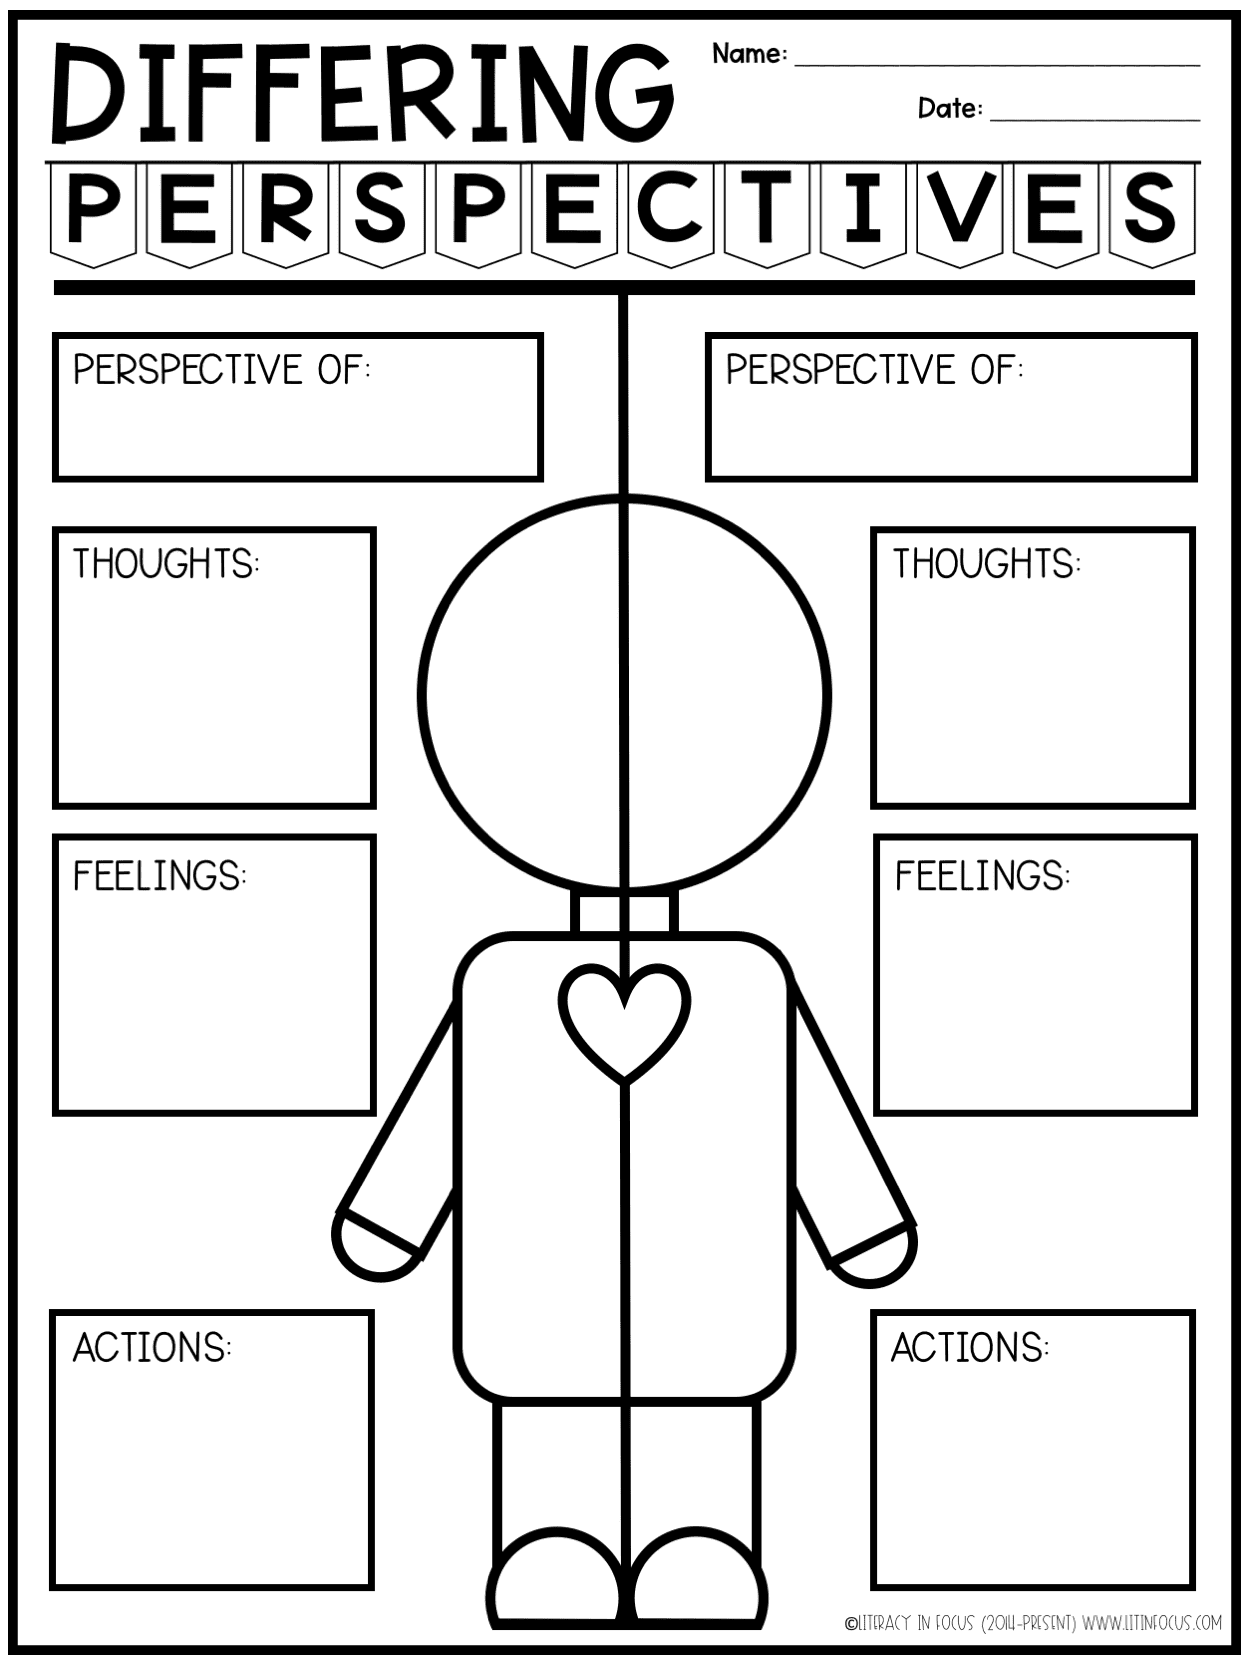 Differing Perspectives Graphic Organizer